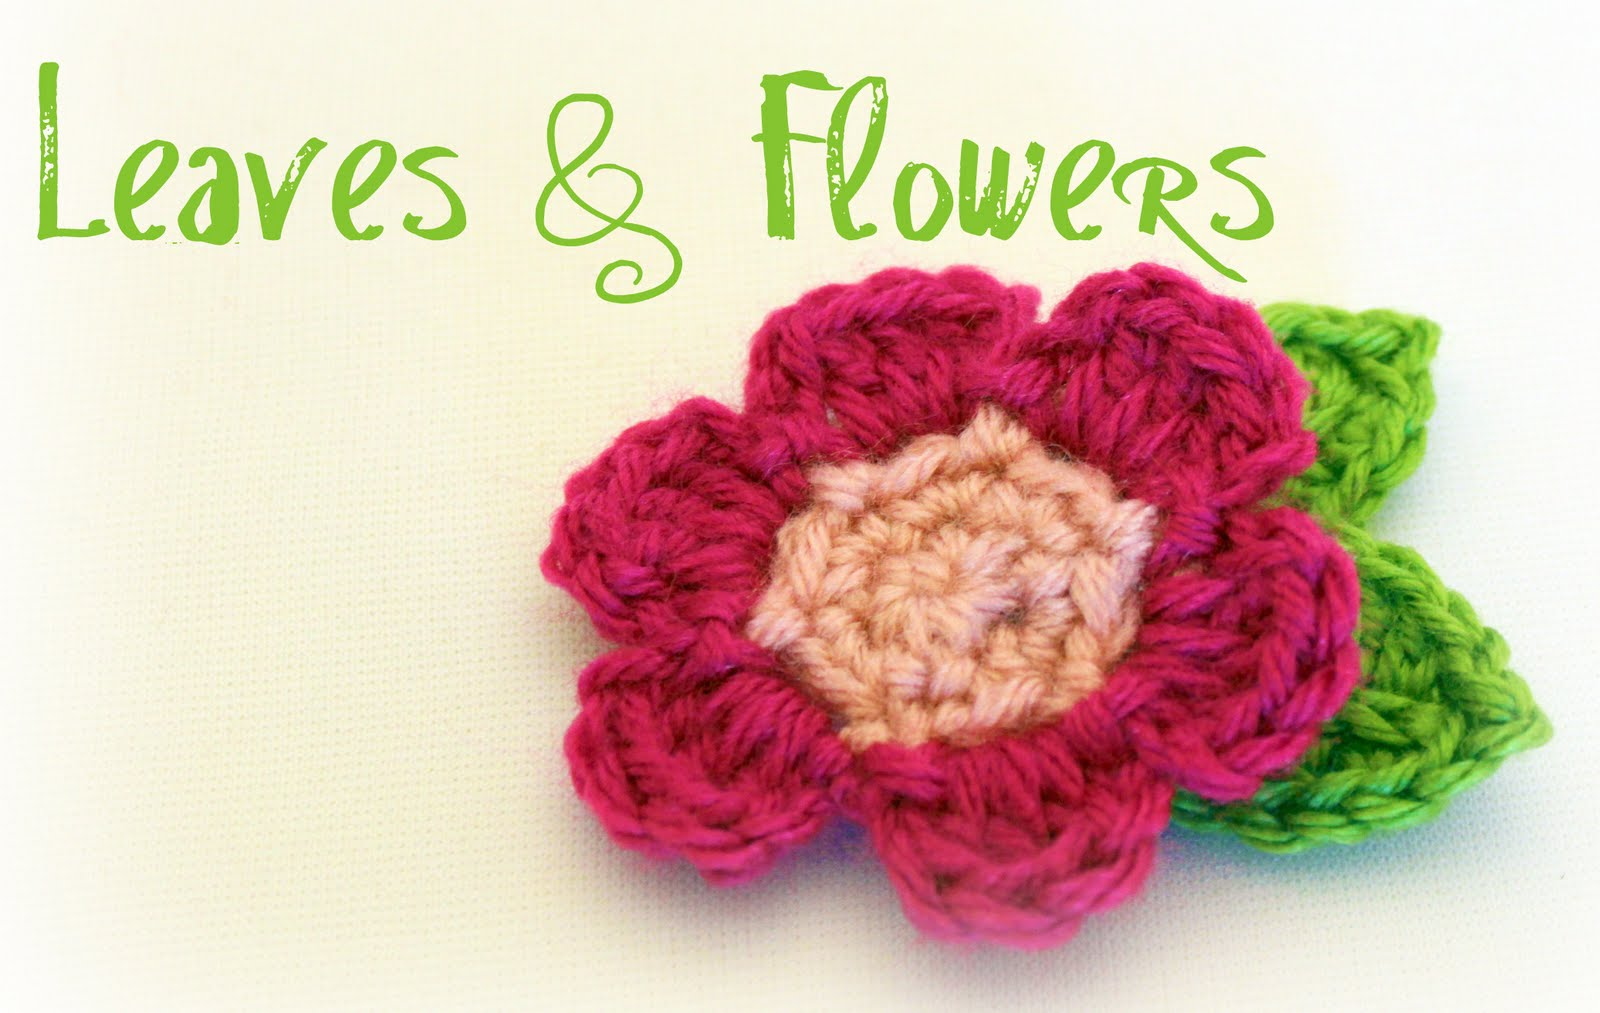 PATTERN FOR CROCHETED FLOWER